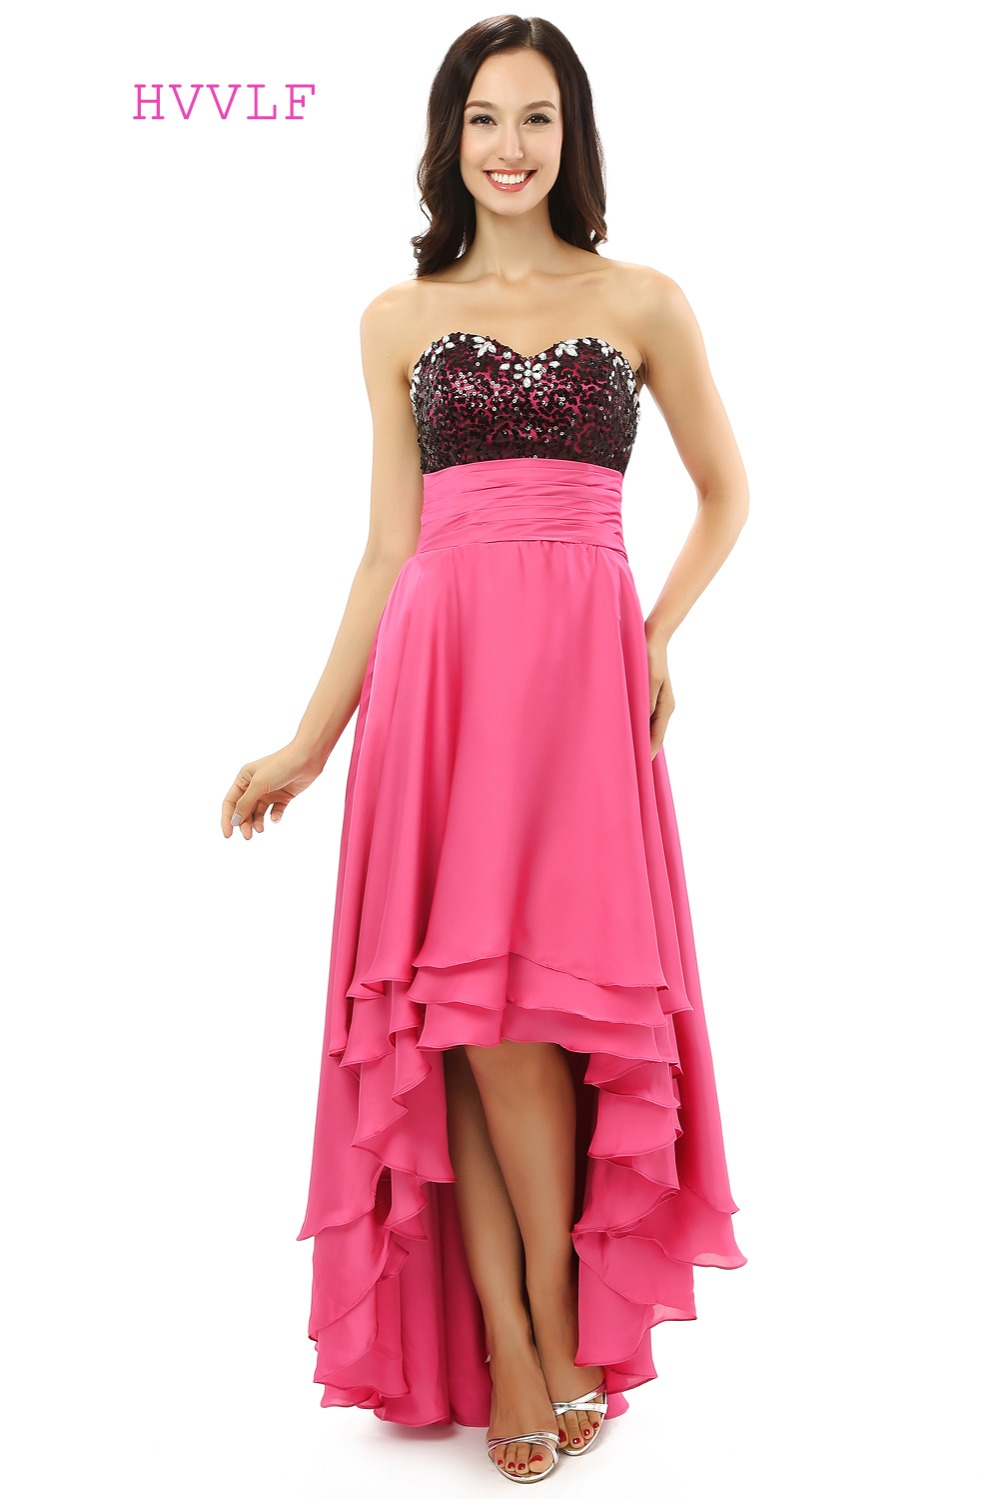 Robe De En Bas Soirée Mousseline Photos Salut Same The Soie As A Paillettes Bal ligne Cristal Maternité Longue Fuchsia 2019 Robes Sweetheart I9EH2D